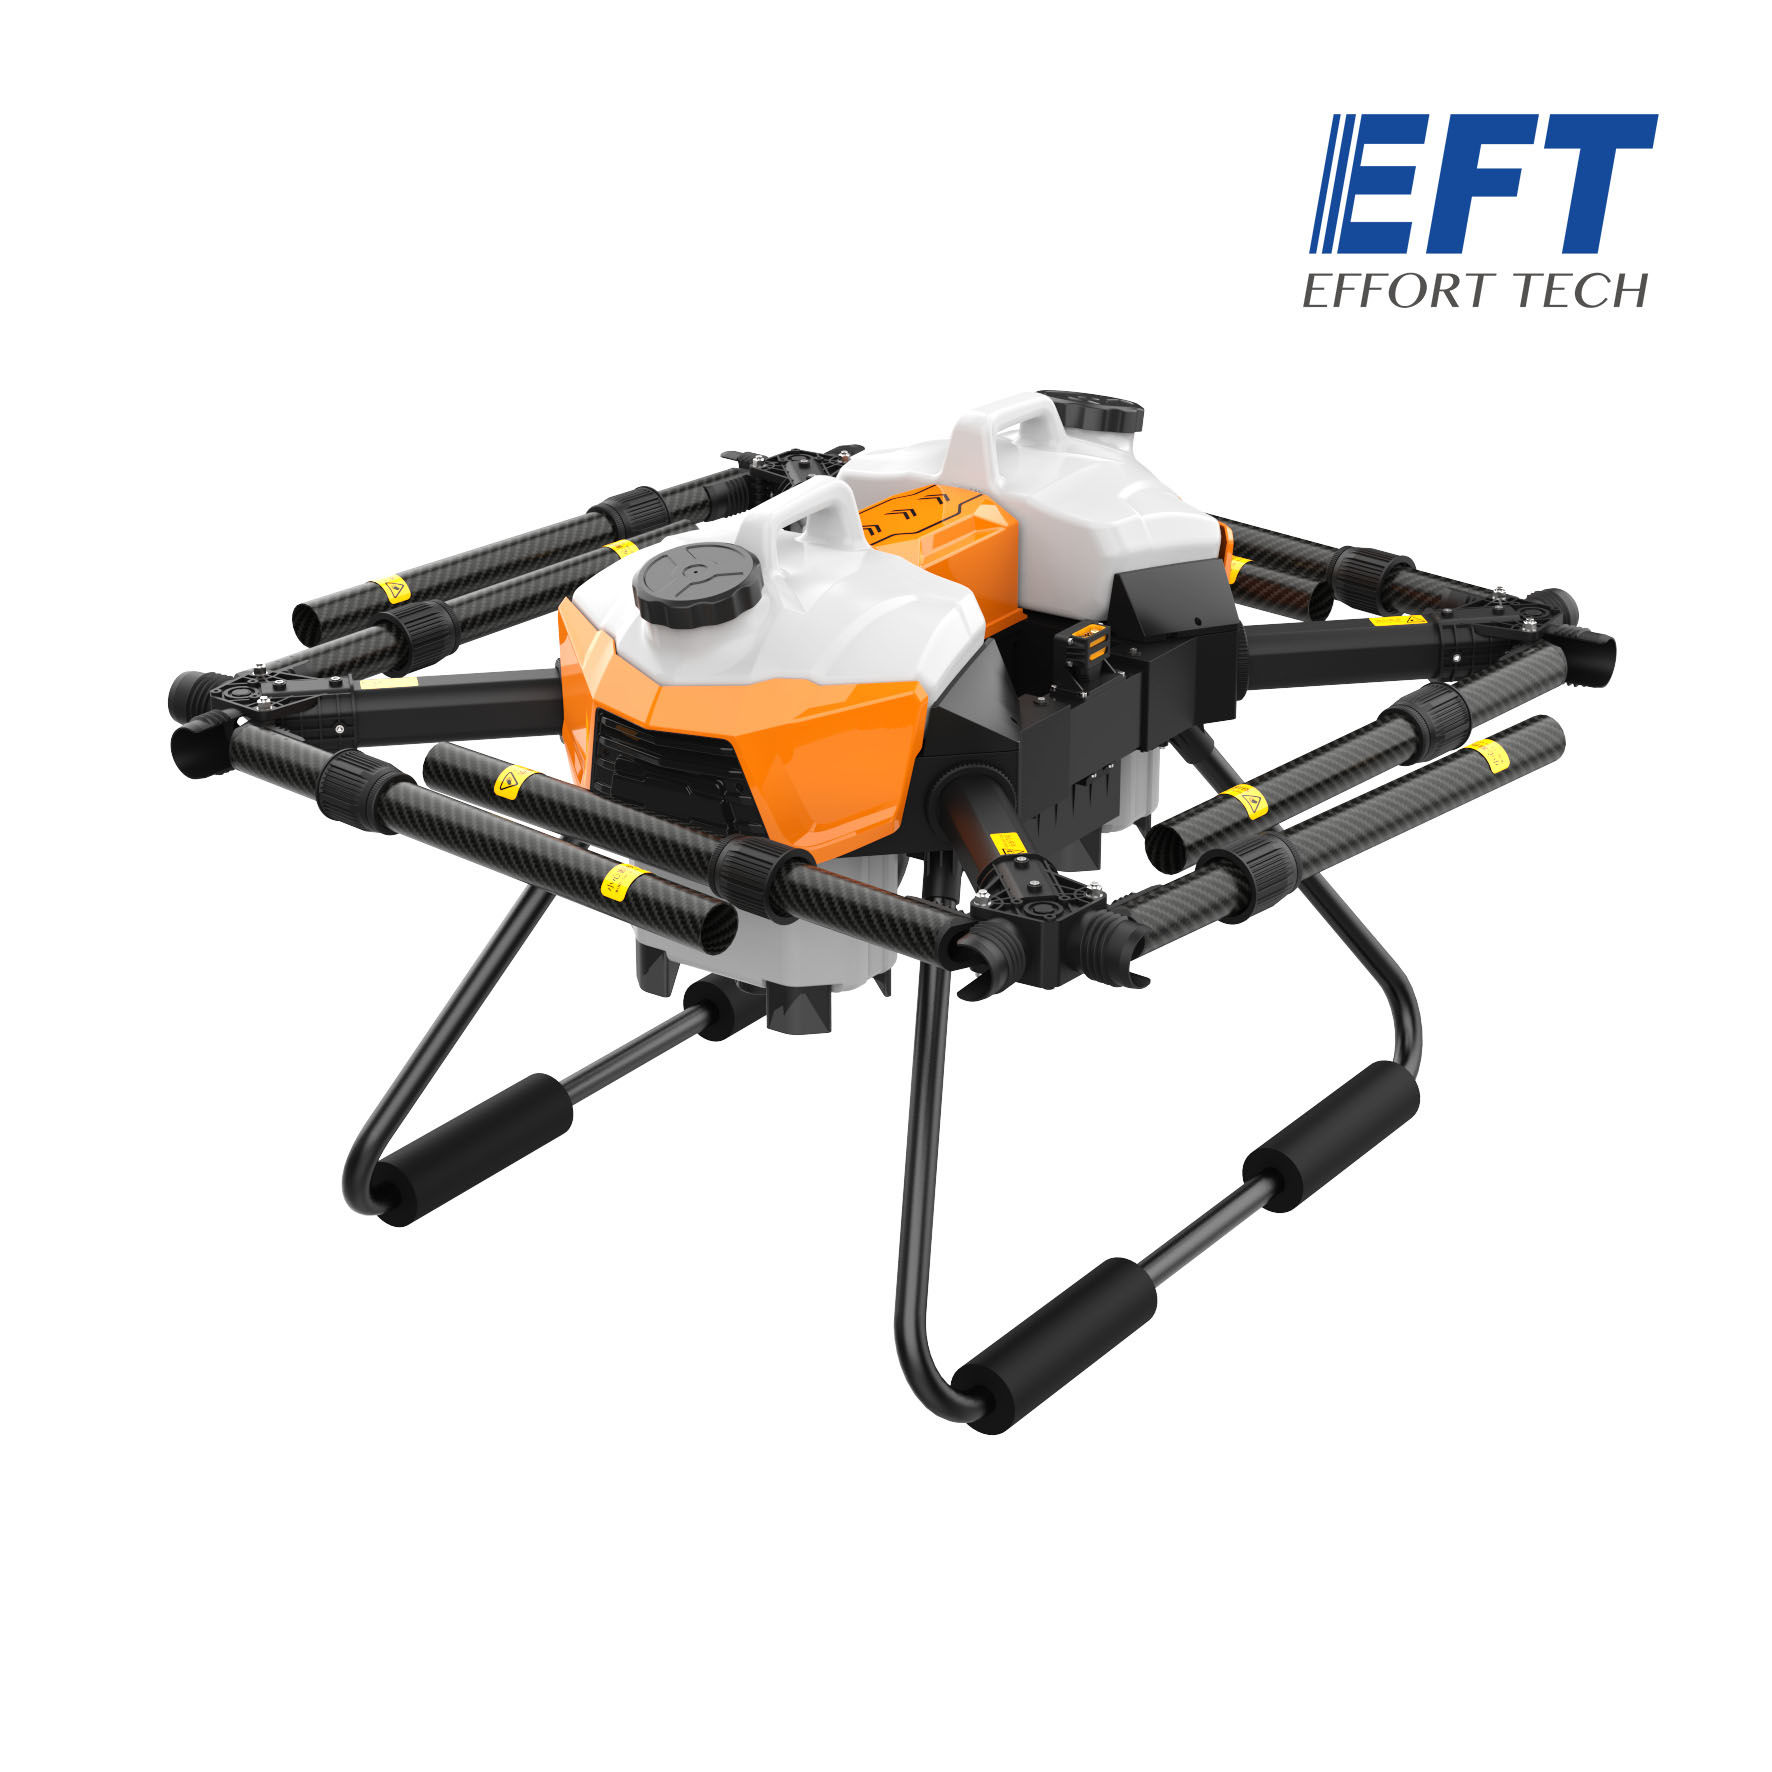 Precision agriculture spraying pesticide uav drones with dji flight control 12l payload plant protection aircraft